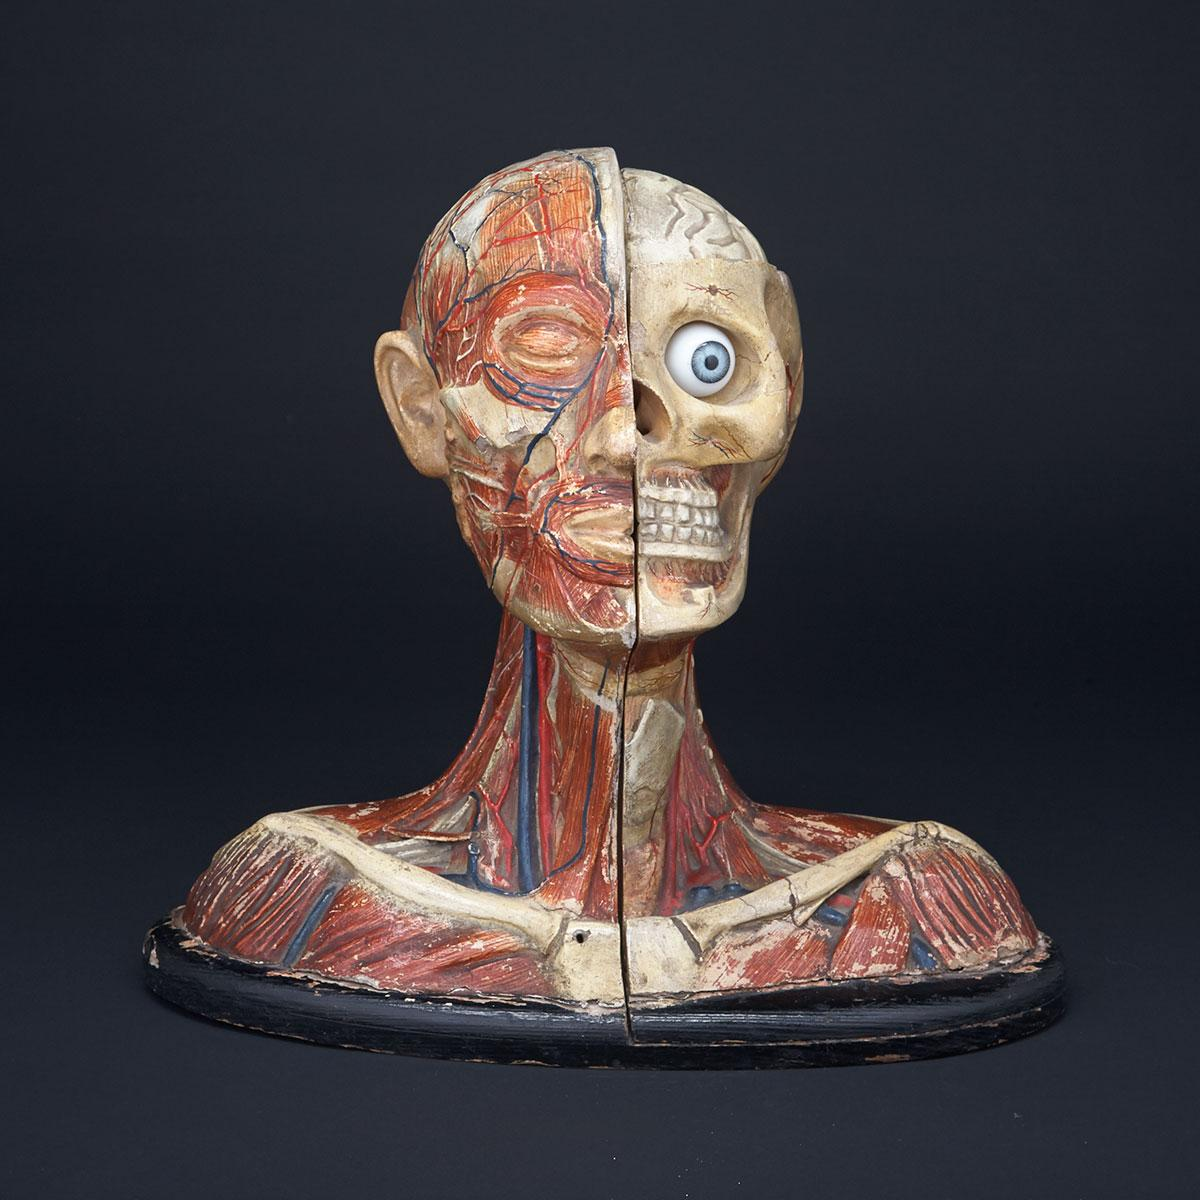 French Polychromed Papier Maché, Glass and Wood Head and Shoulders Anatomical Study Ecorche, early 20th century